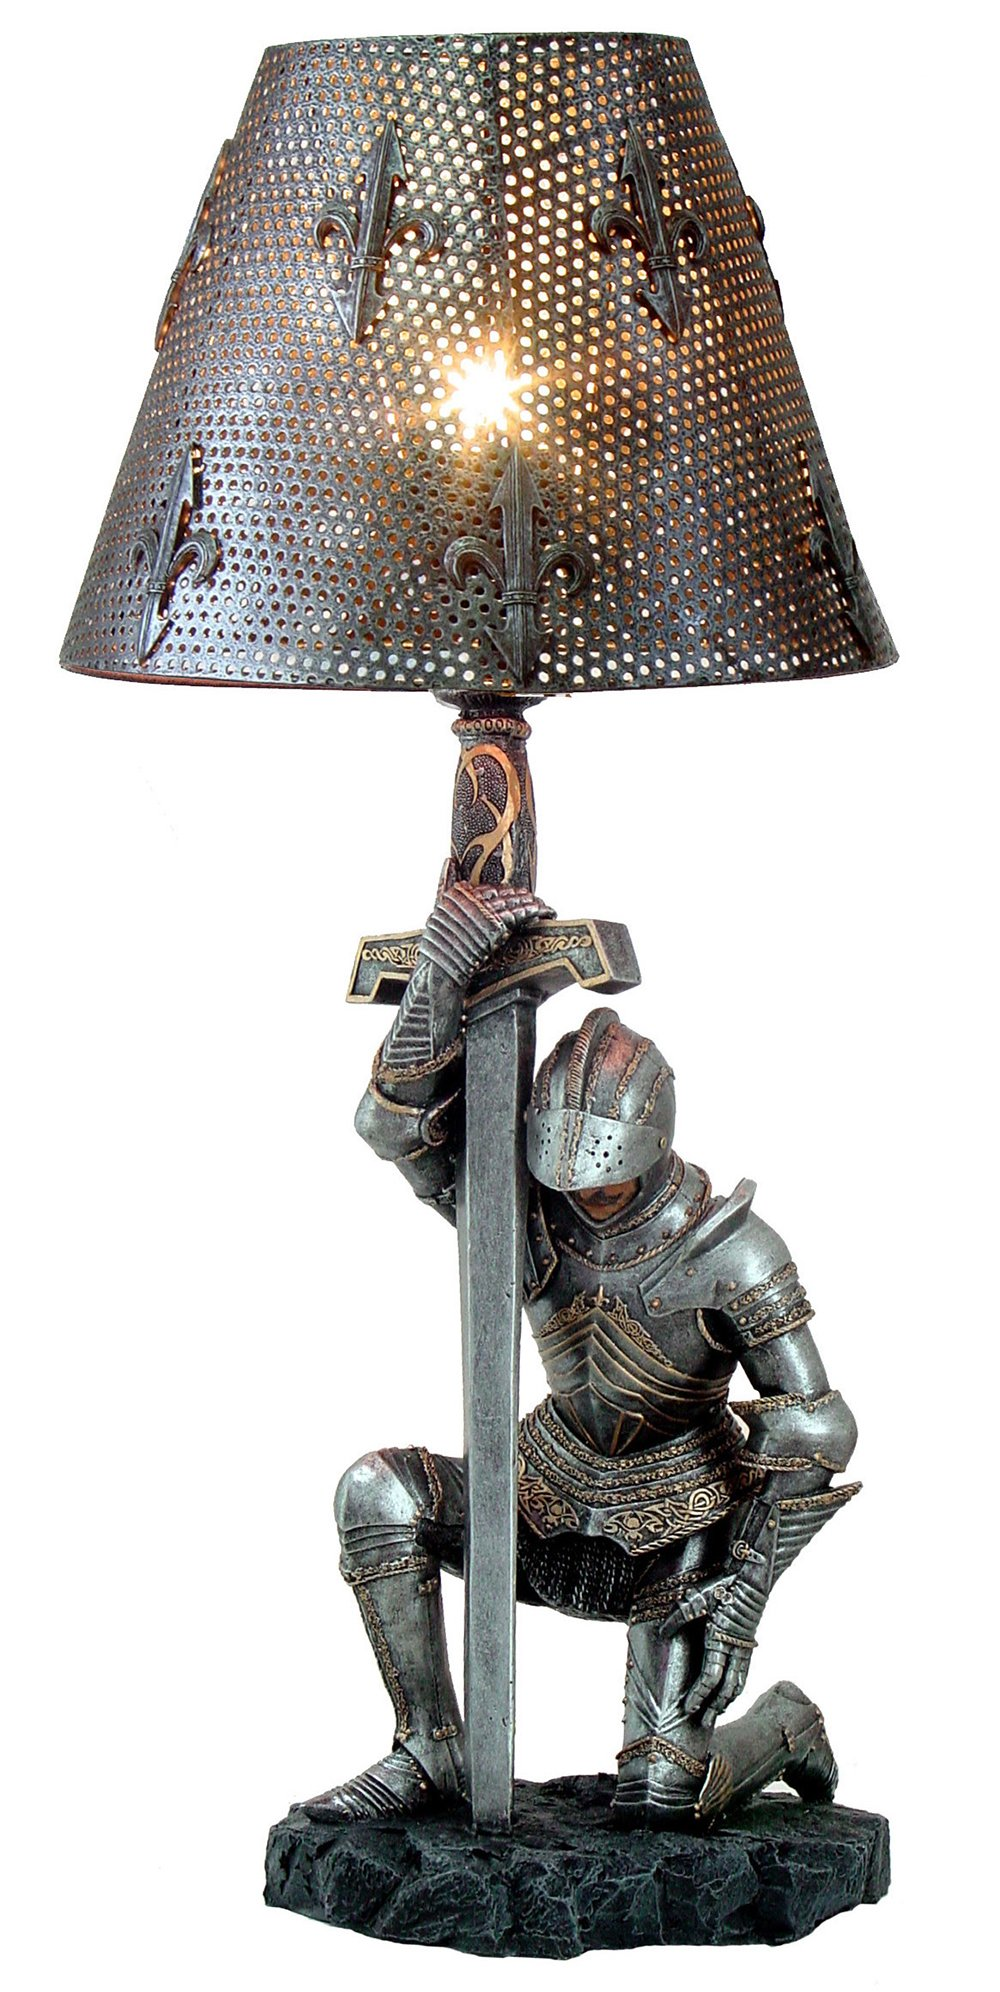 Medieval Knight of Honor Chivalry Sculptural Table Lamp 20 Inch Tall by Pacific Giftware